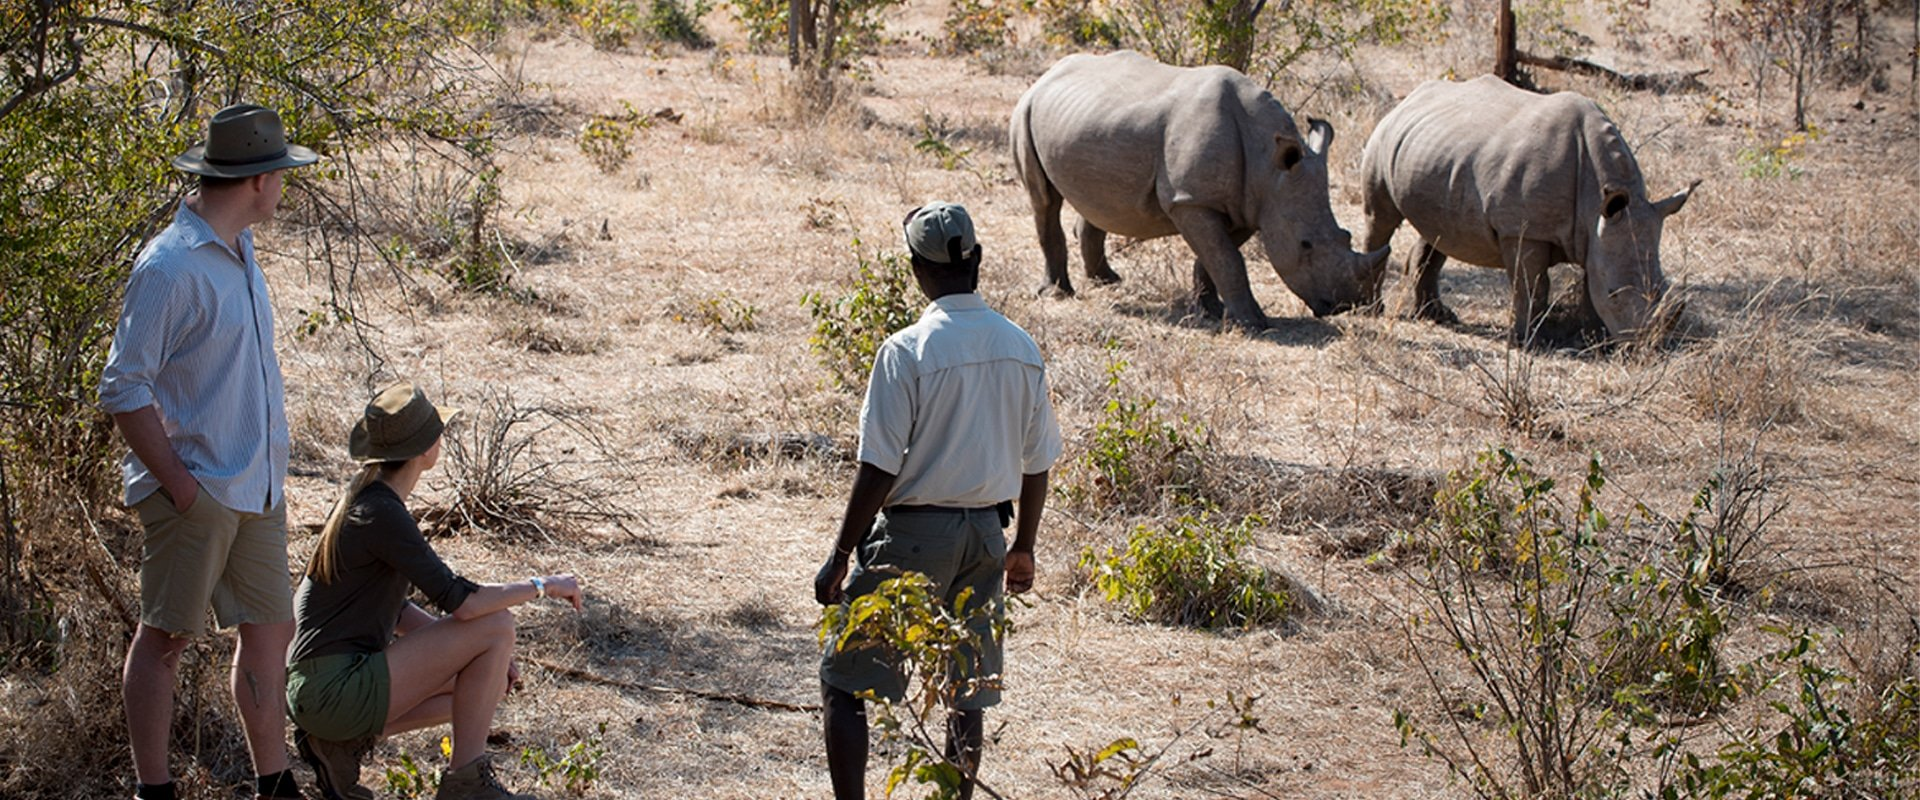 Feel the thrill of a walking safari in search of rhinos